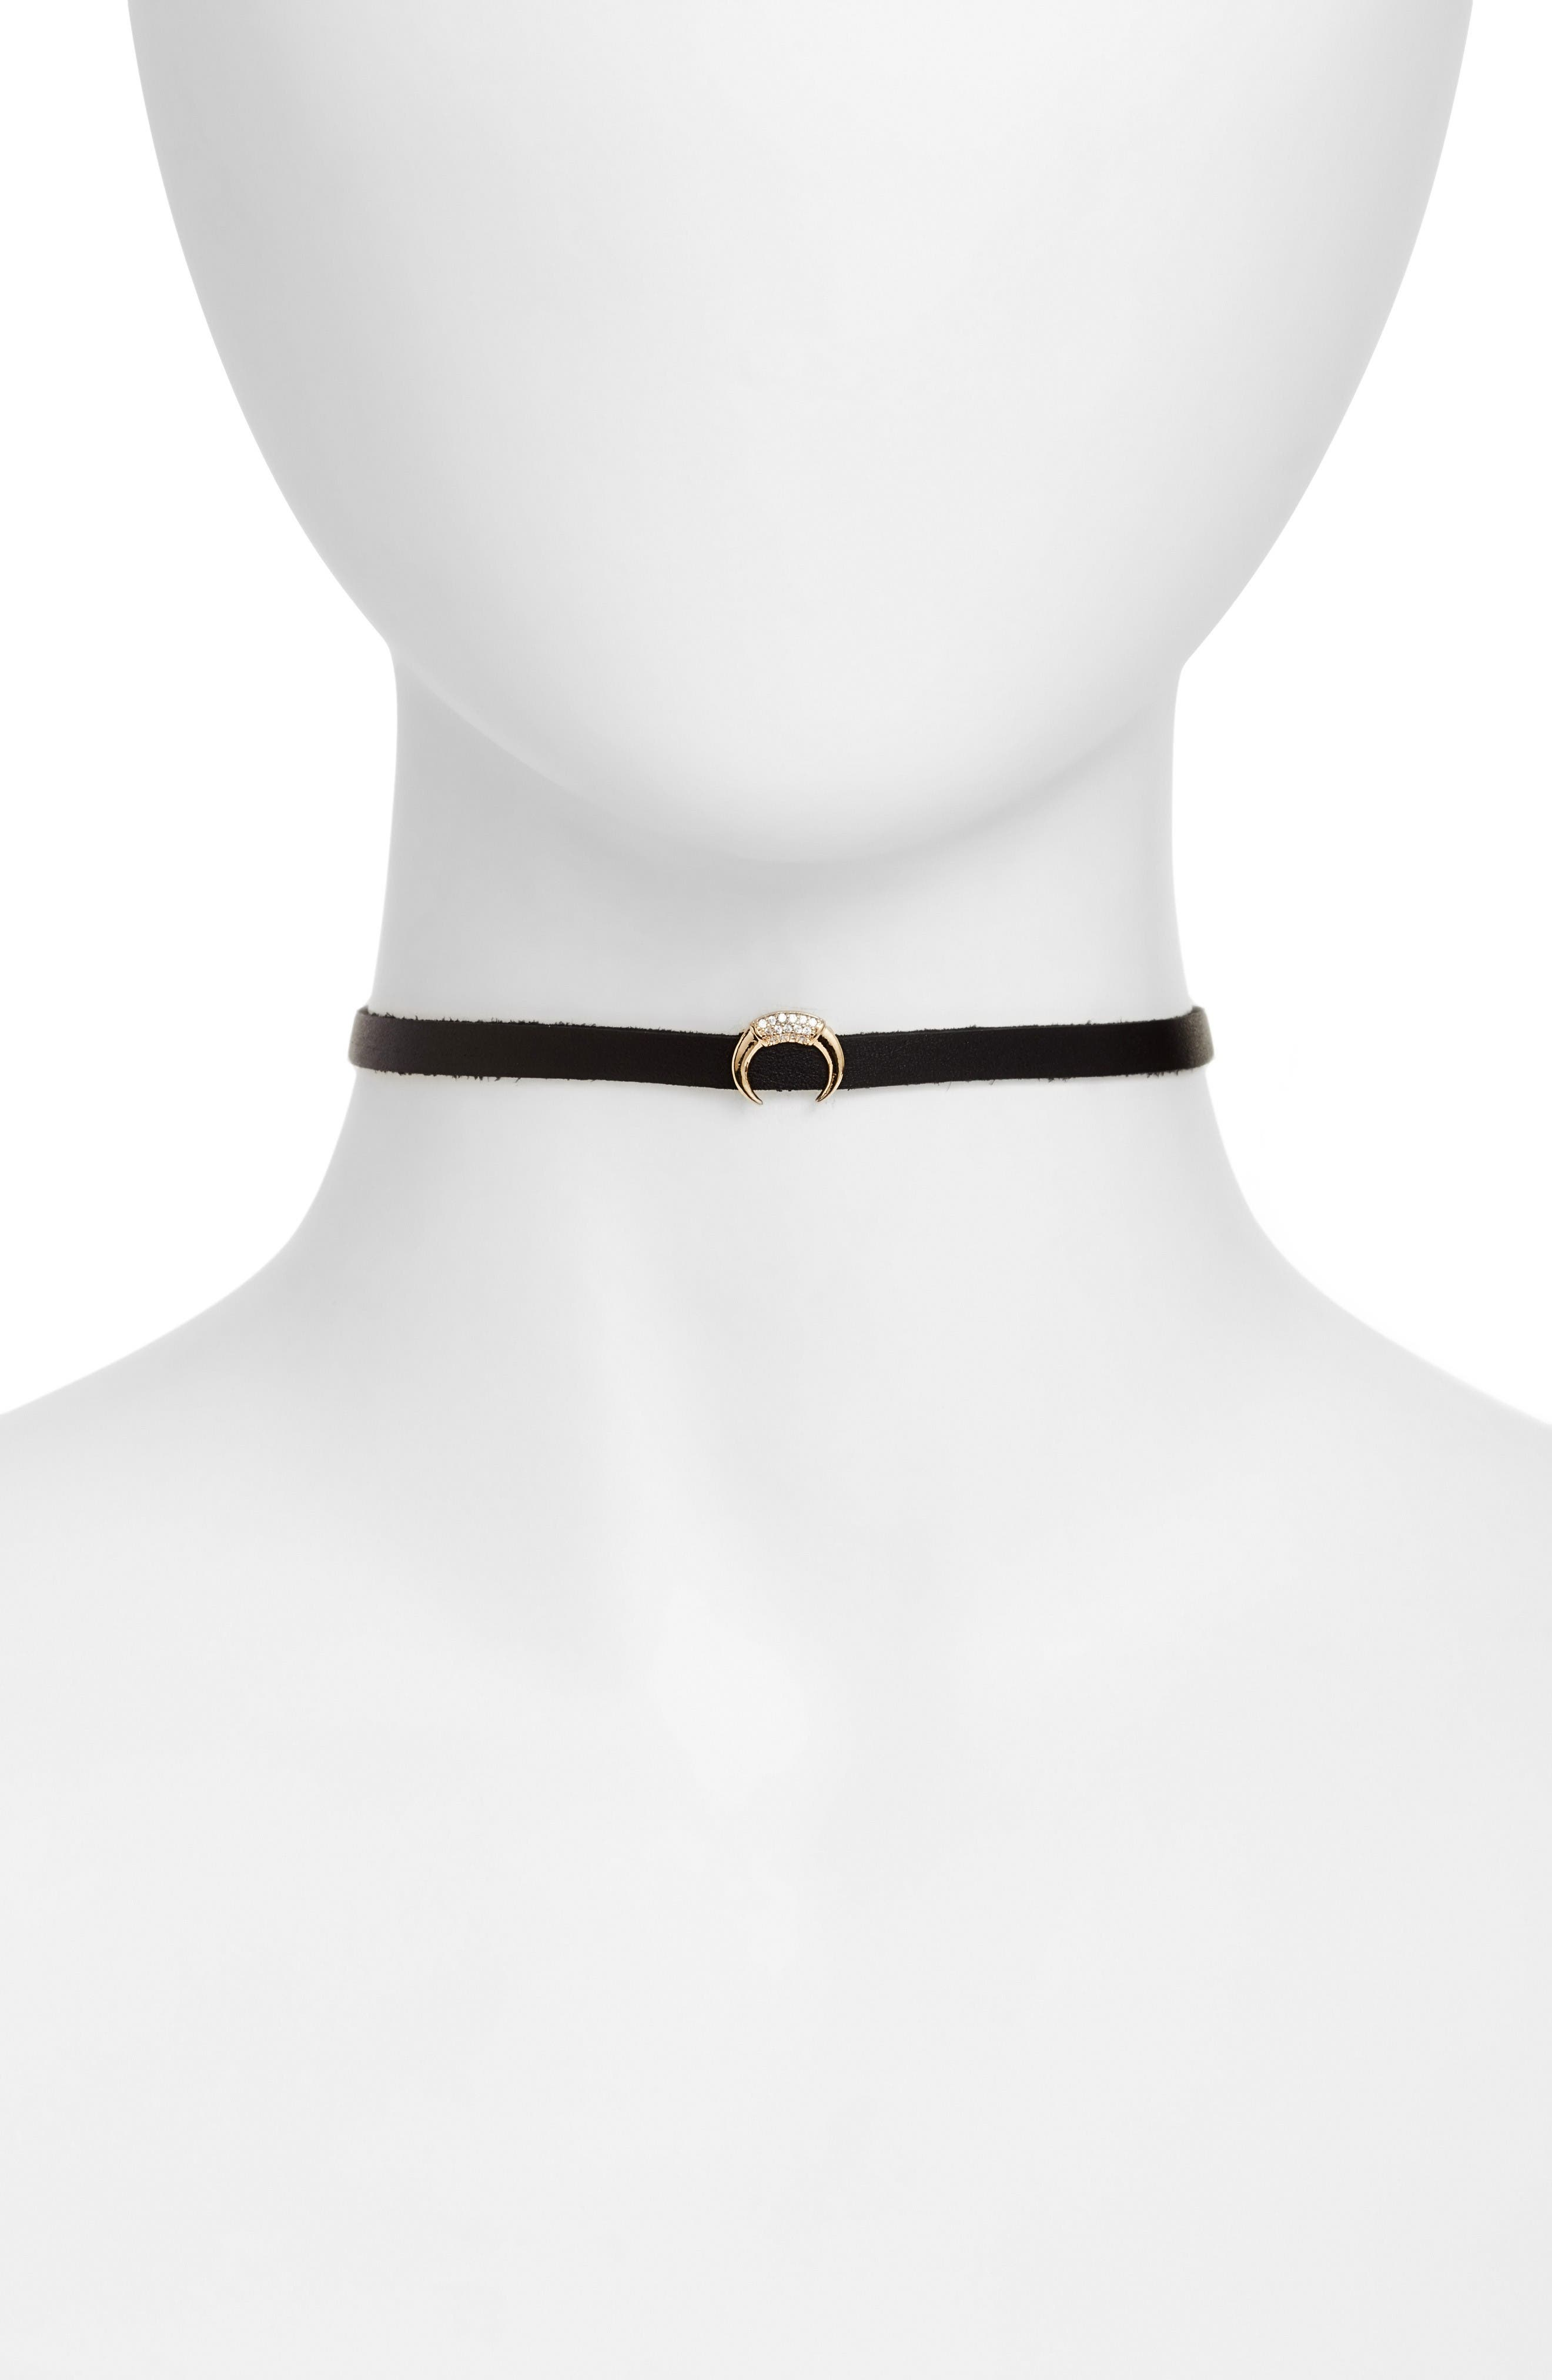 Typhon Choker,                         Main,                         color, Gold/ Black/ Clear